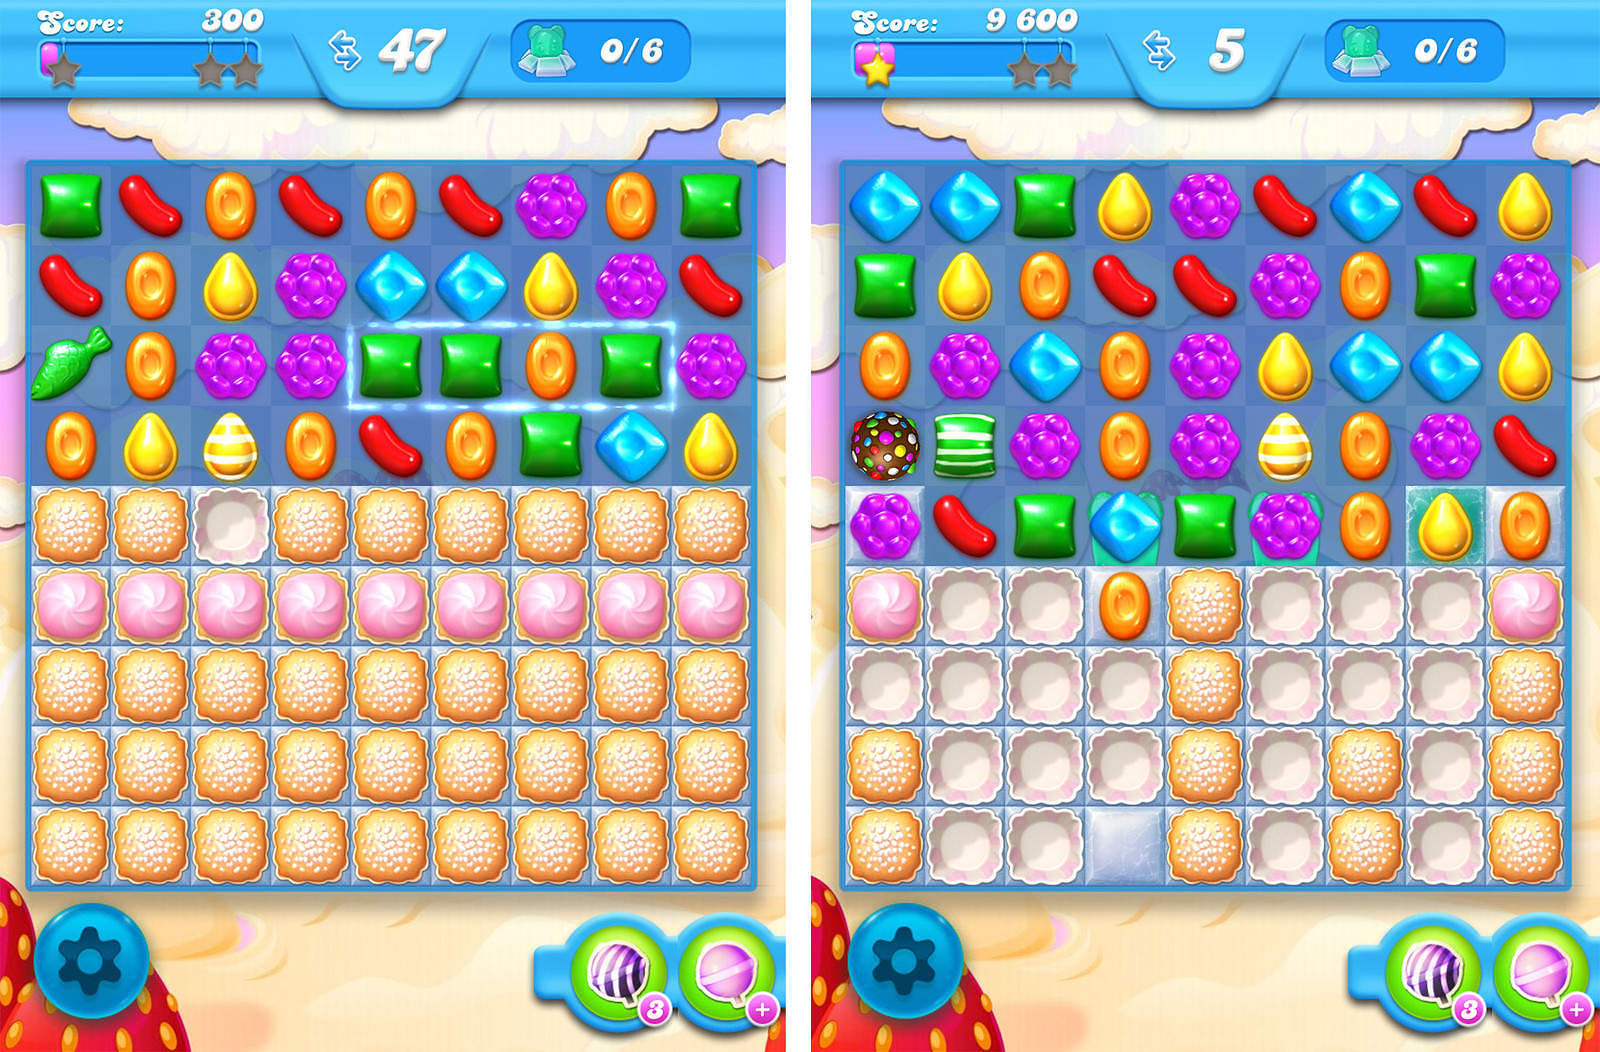 Candy Crush Soda Livello 40